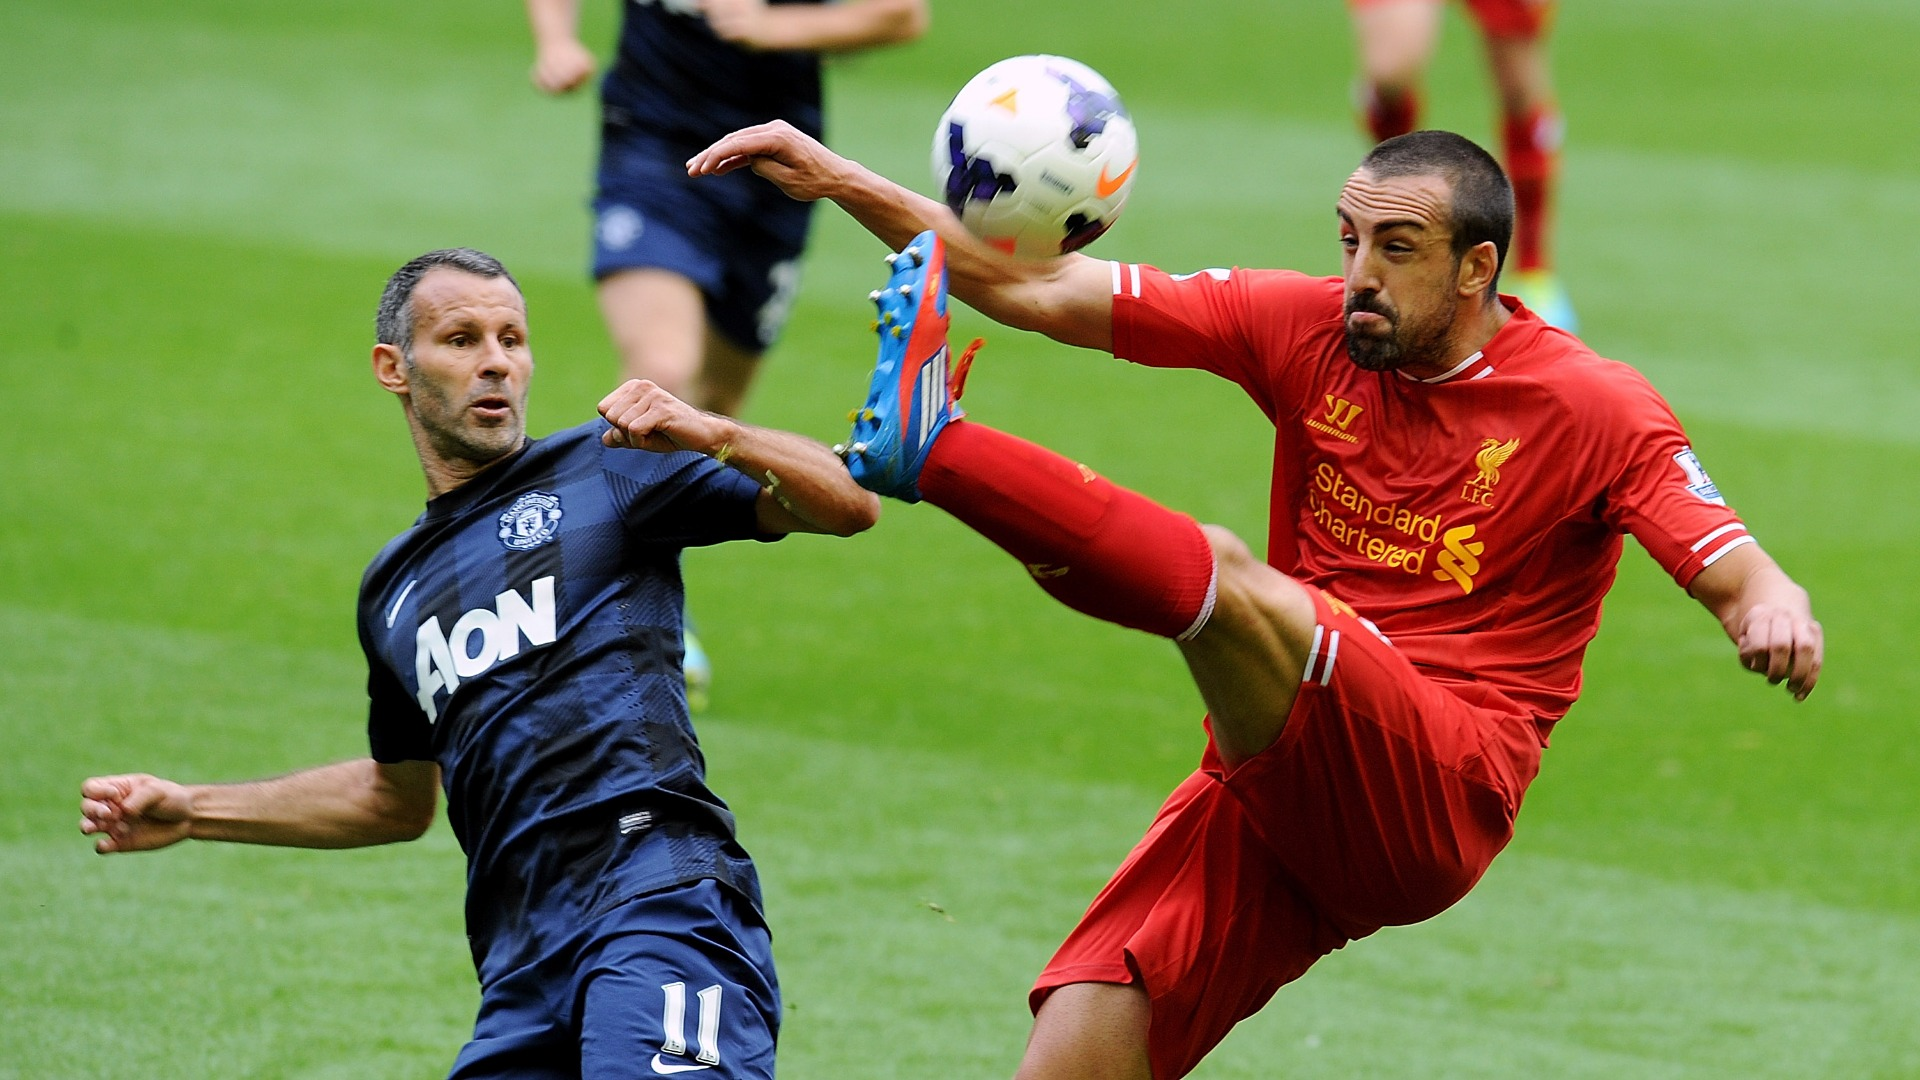 Jose Enrique: It's nice to see Man Utd competitive... as long as Liverpool win the title!